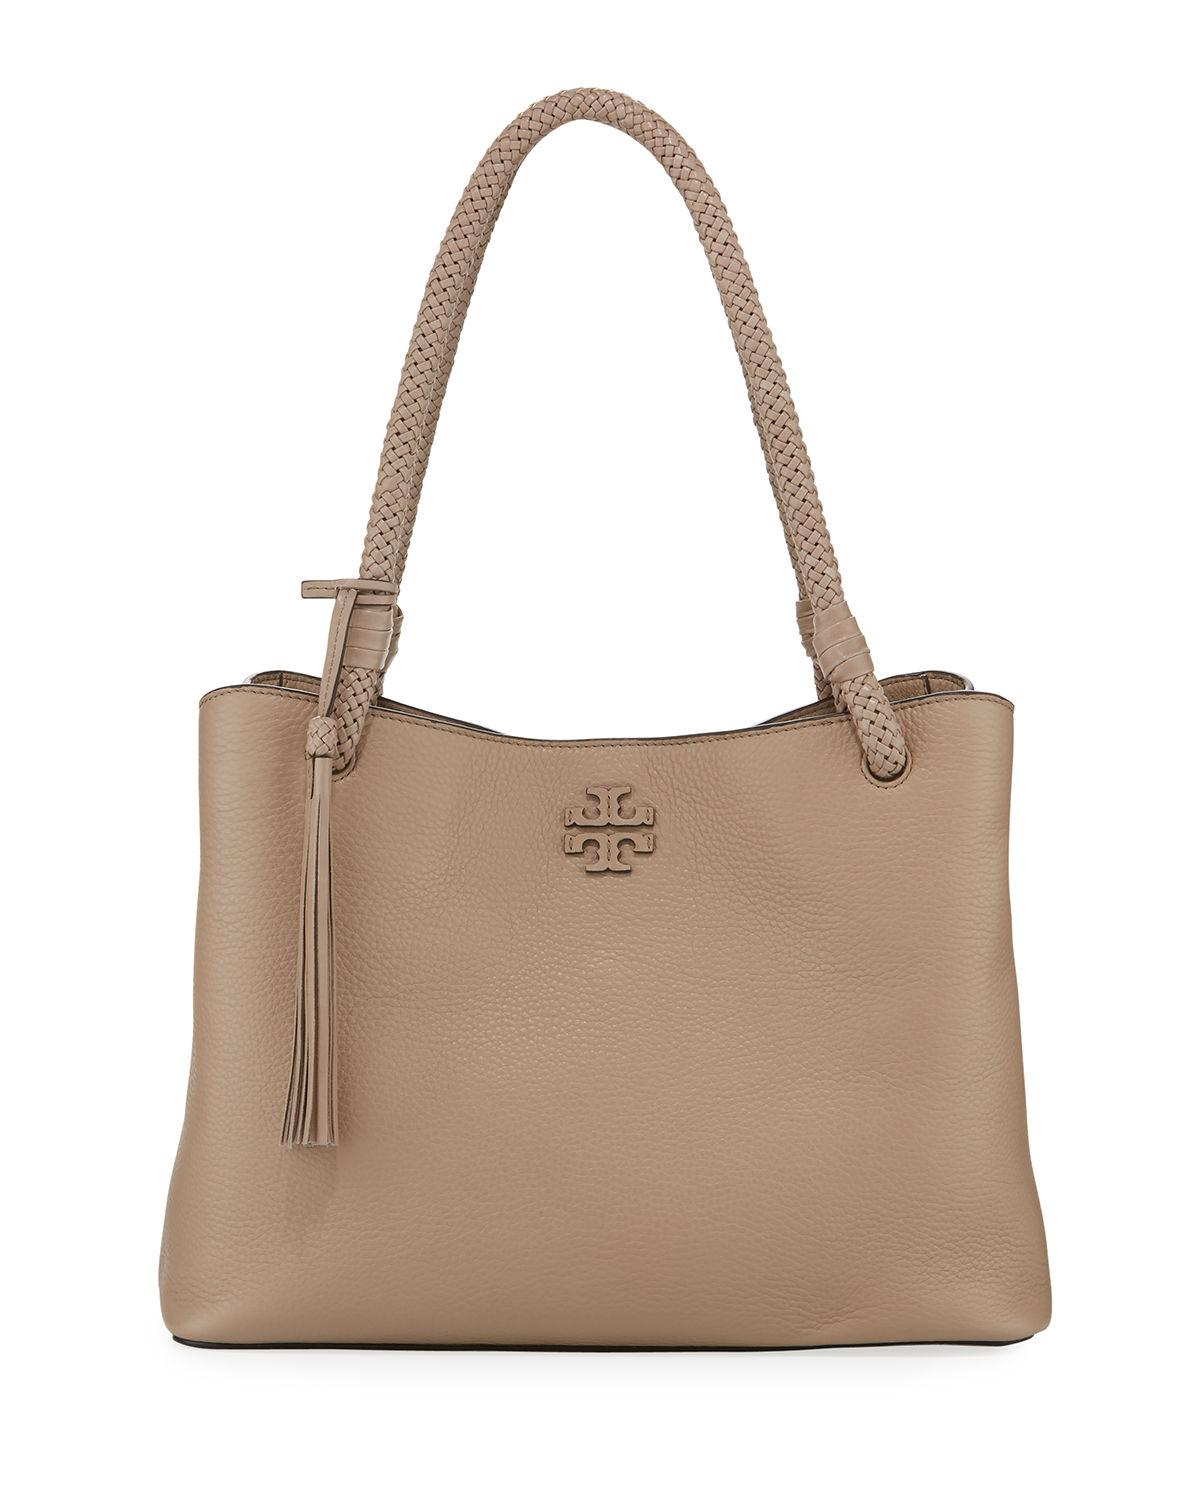 a257308353eb Lyst - Tory Burch Taylor Triple-compartment Tote Bag in Brown